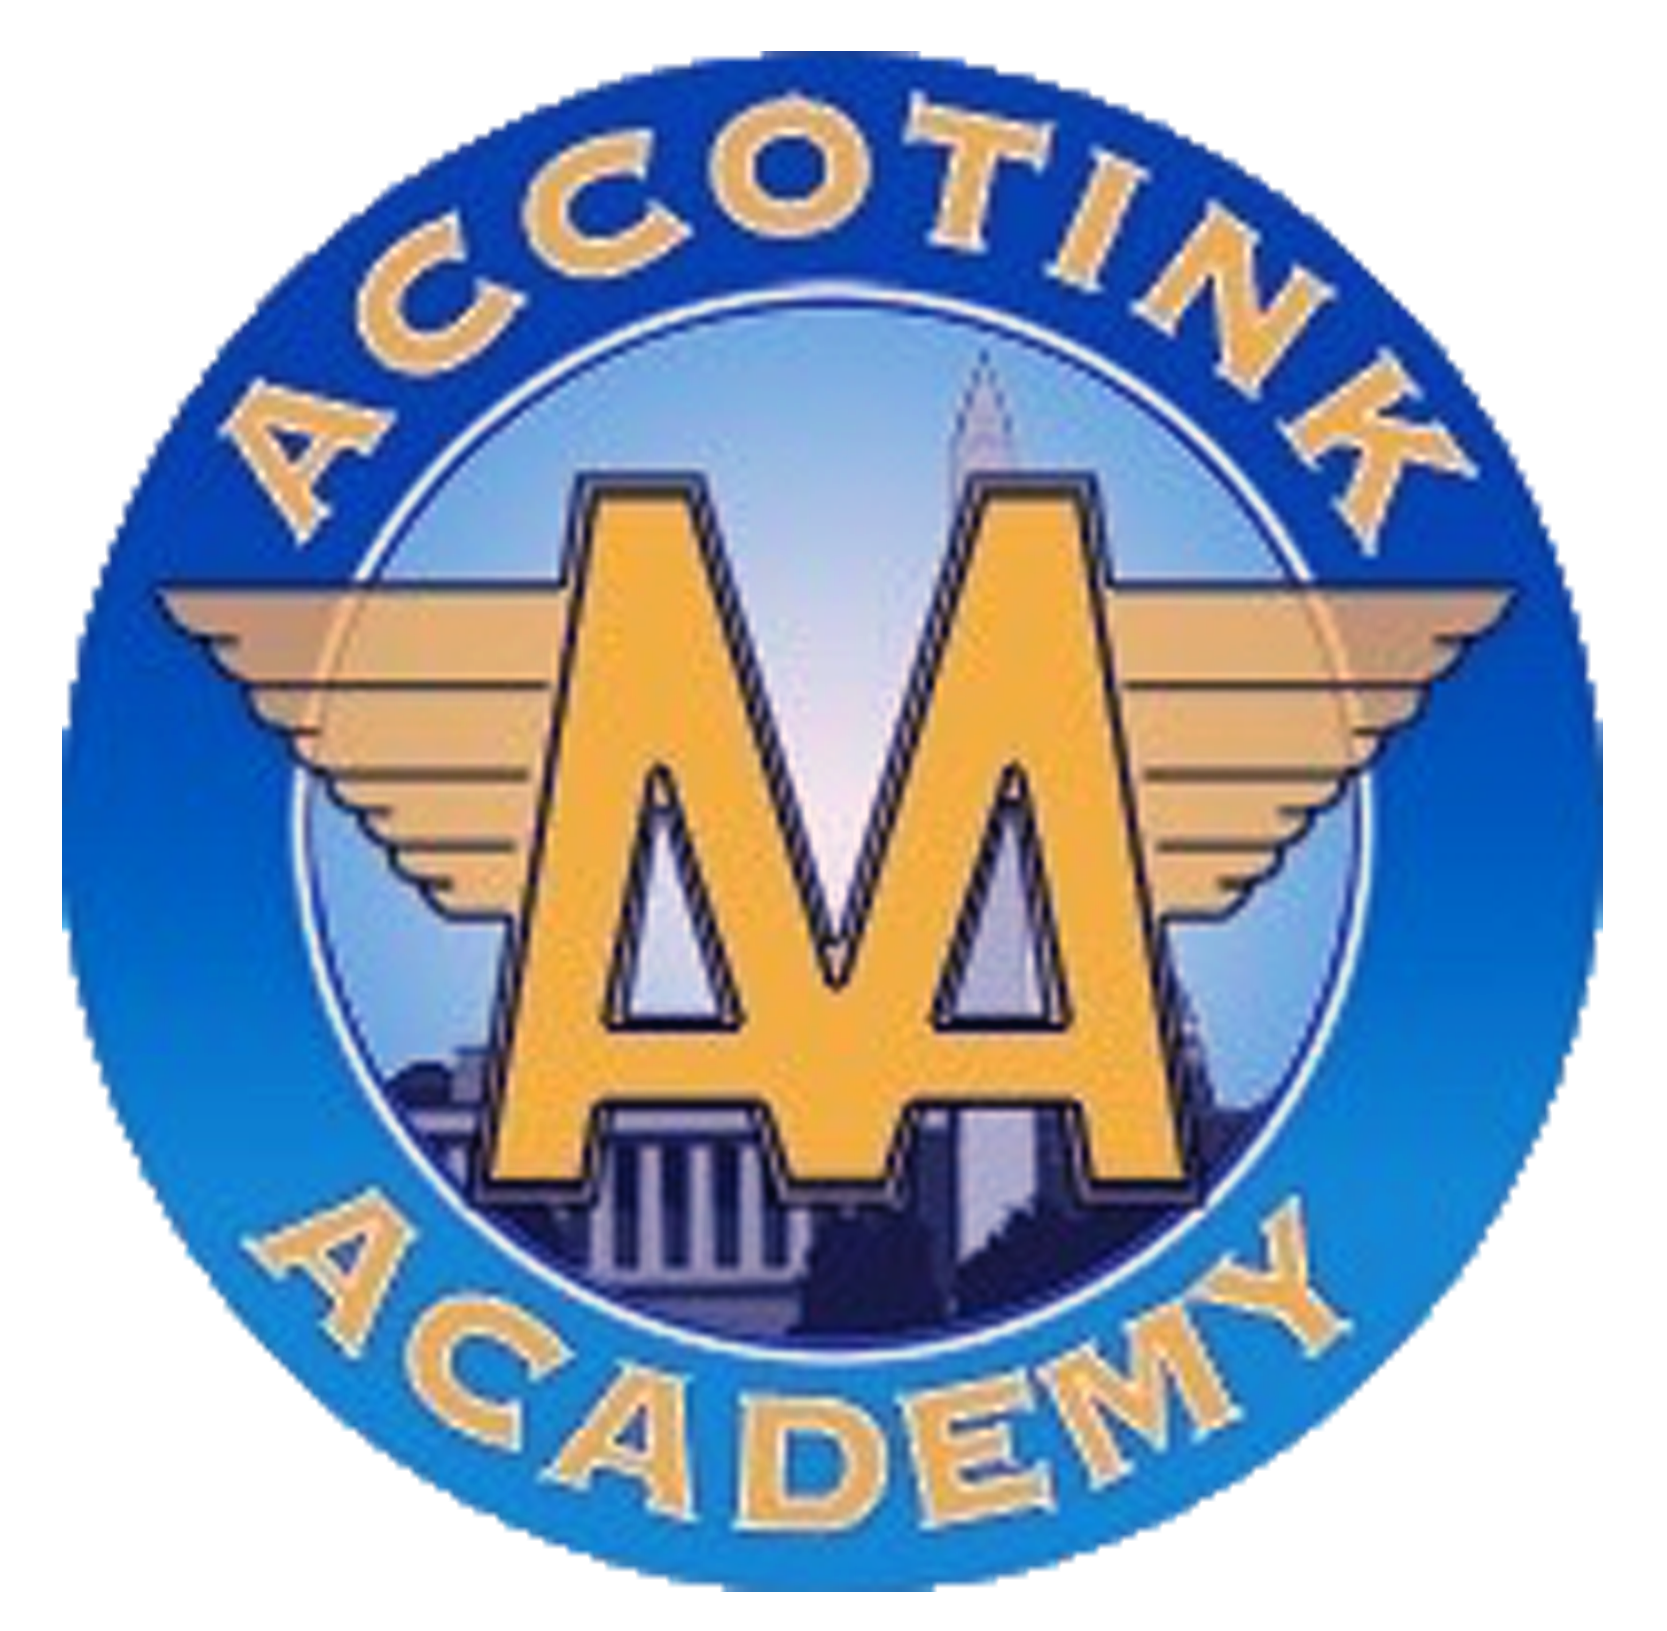 Accotink Academy Inc.